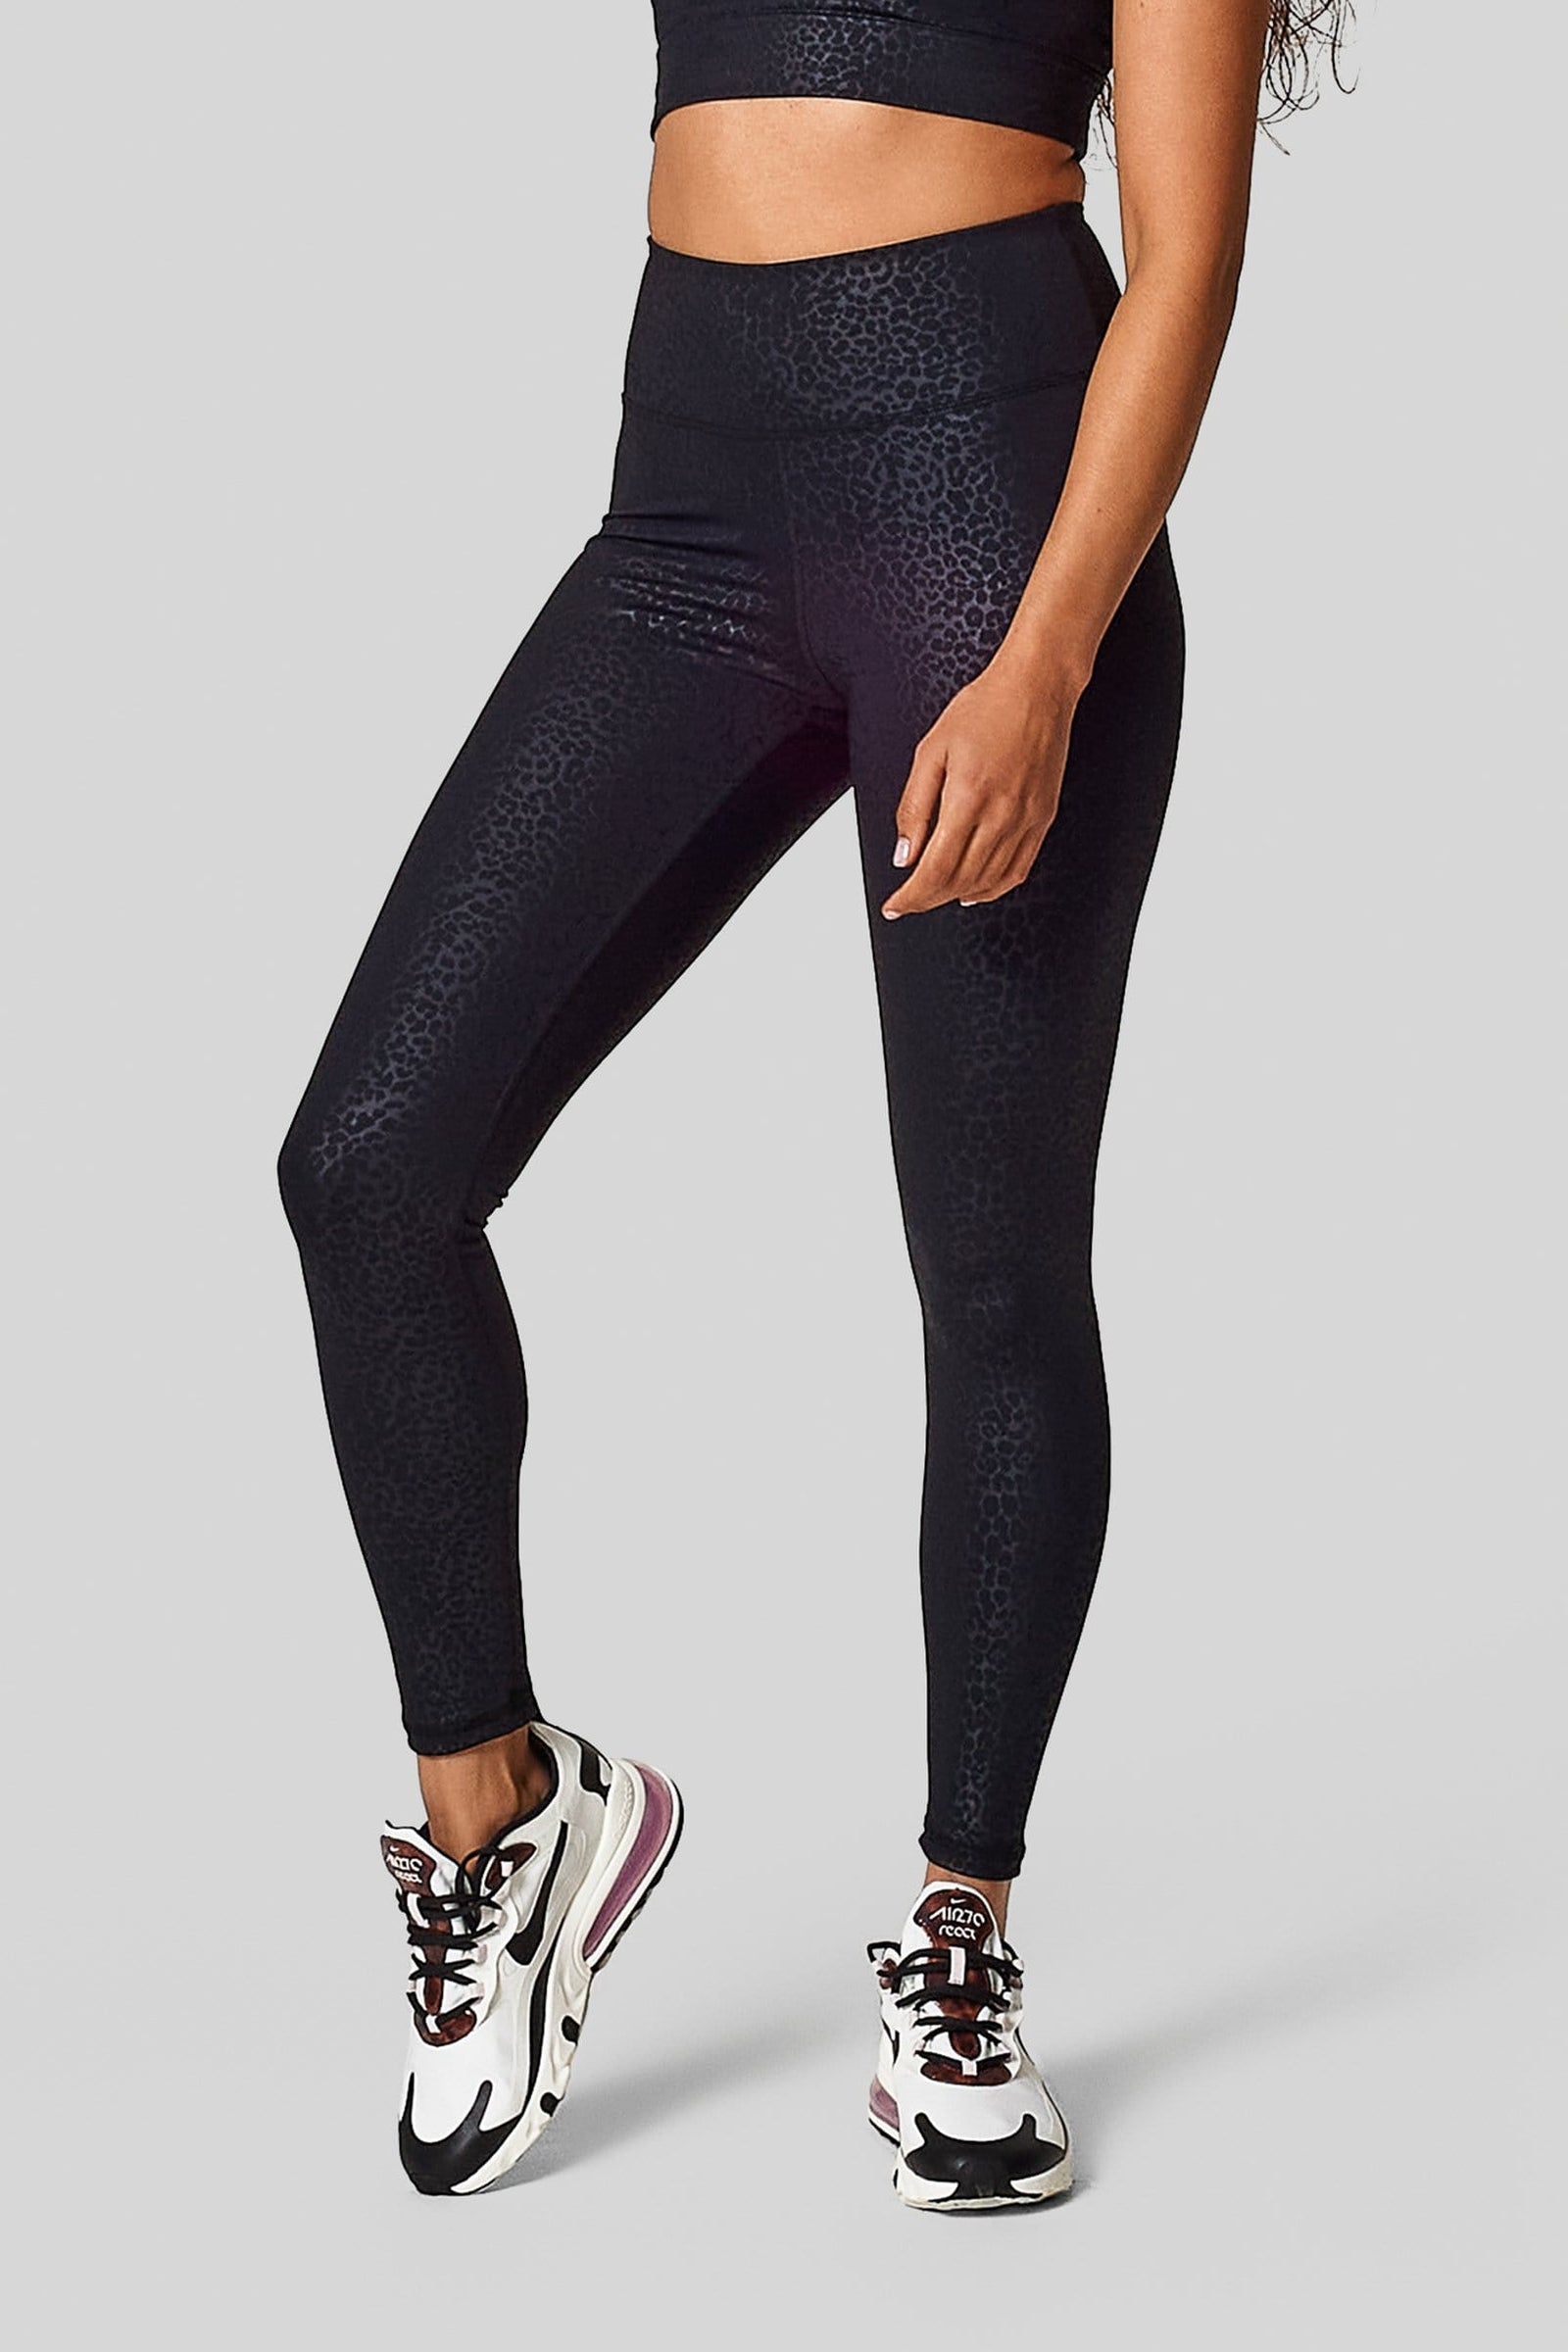 A woman wears new nikes with a pair of black Cheetah print high waisted leggings.